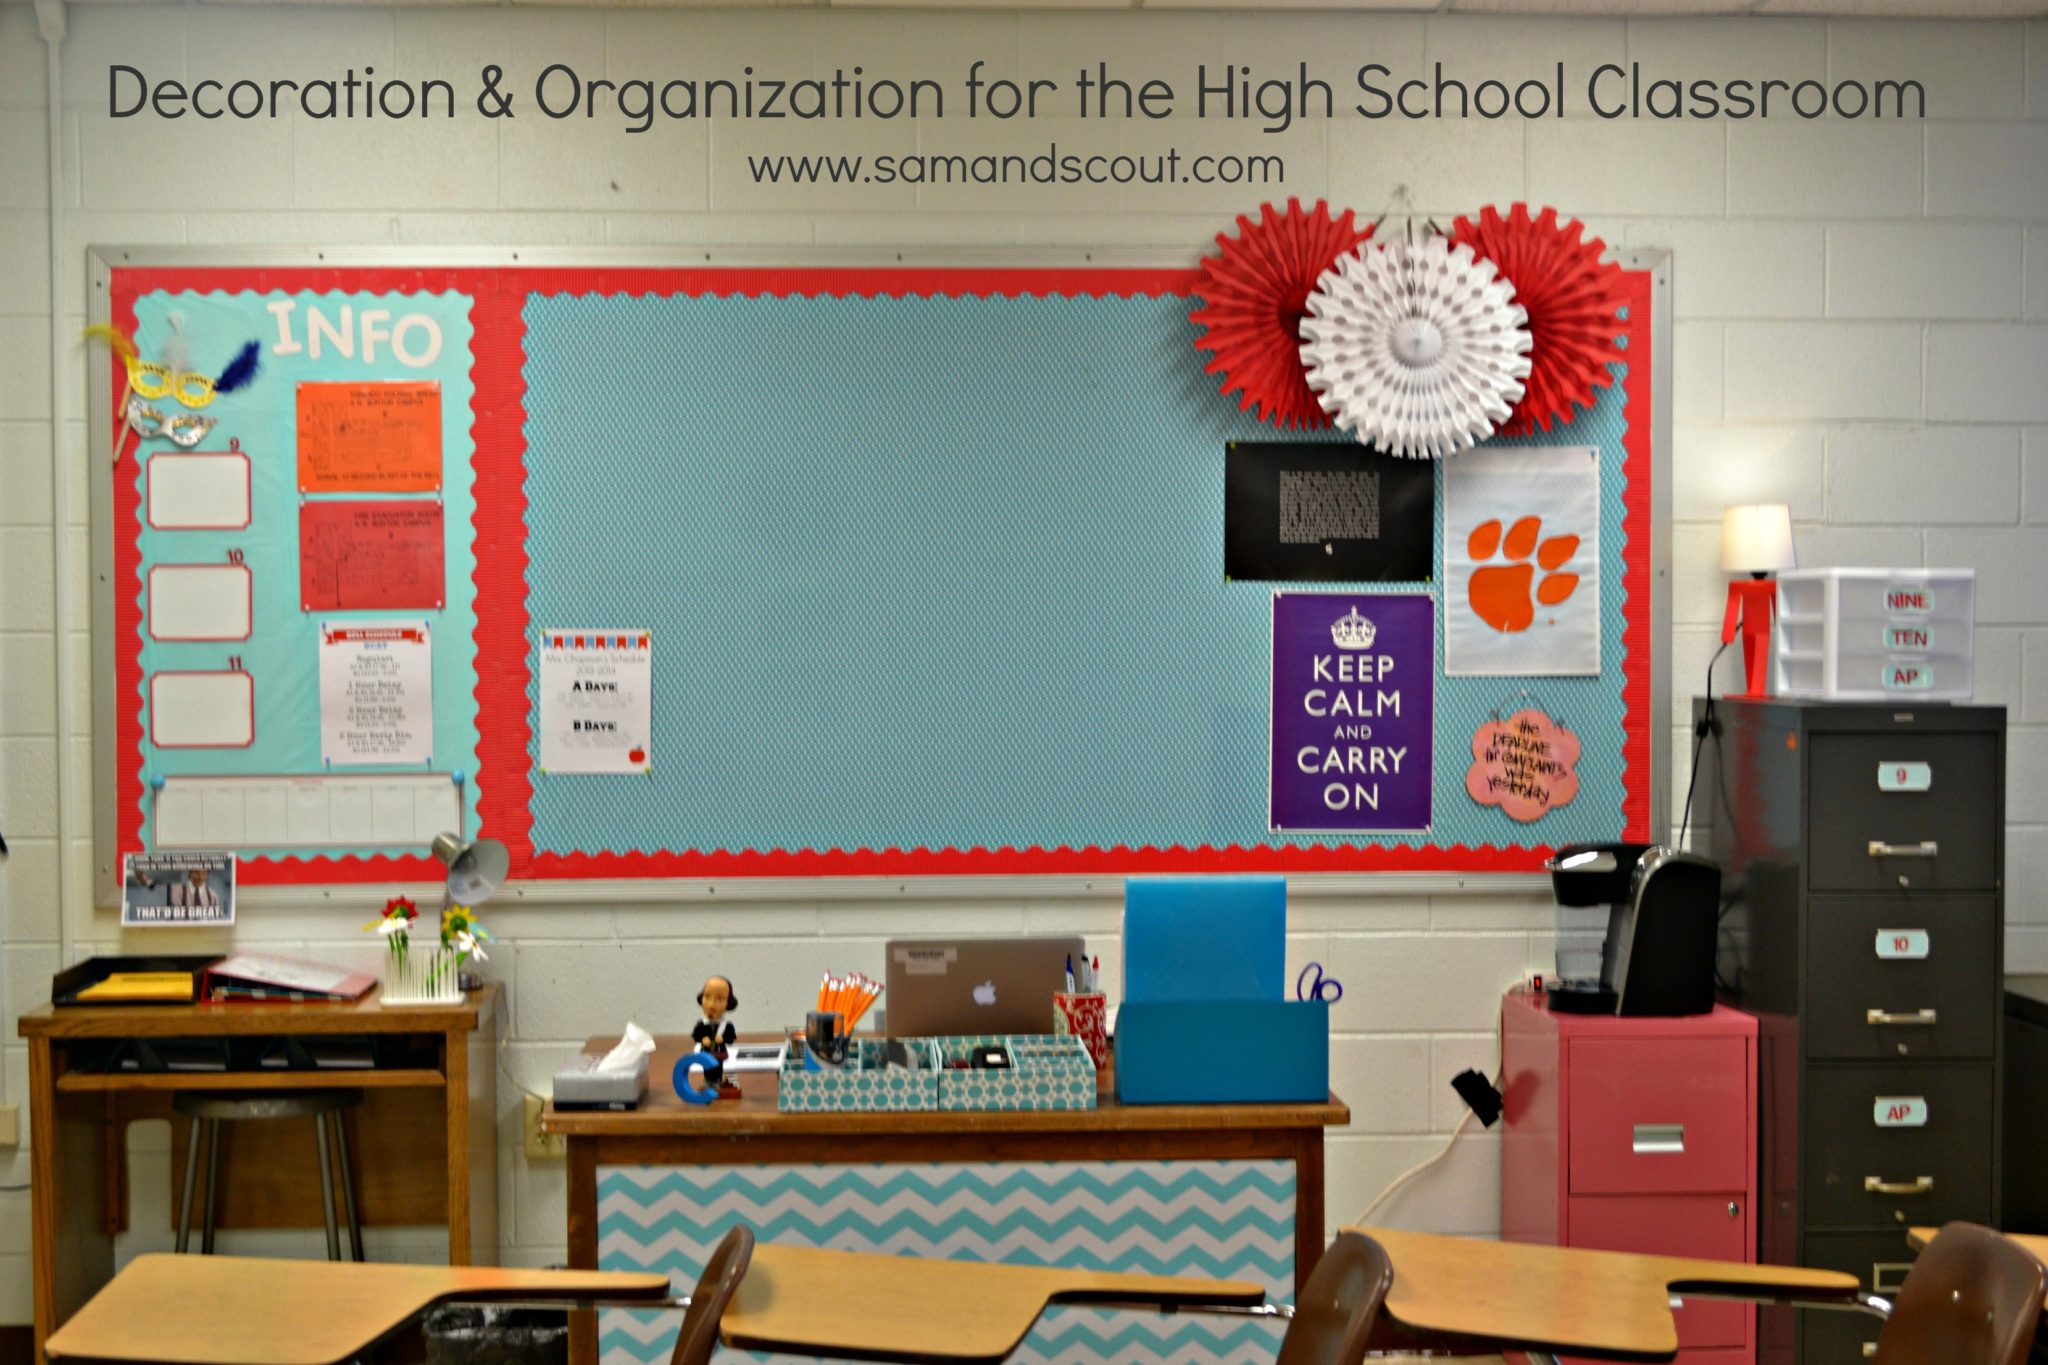 Classroom Decorating Ideas ~ Decoration organization for the high school classroom